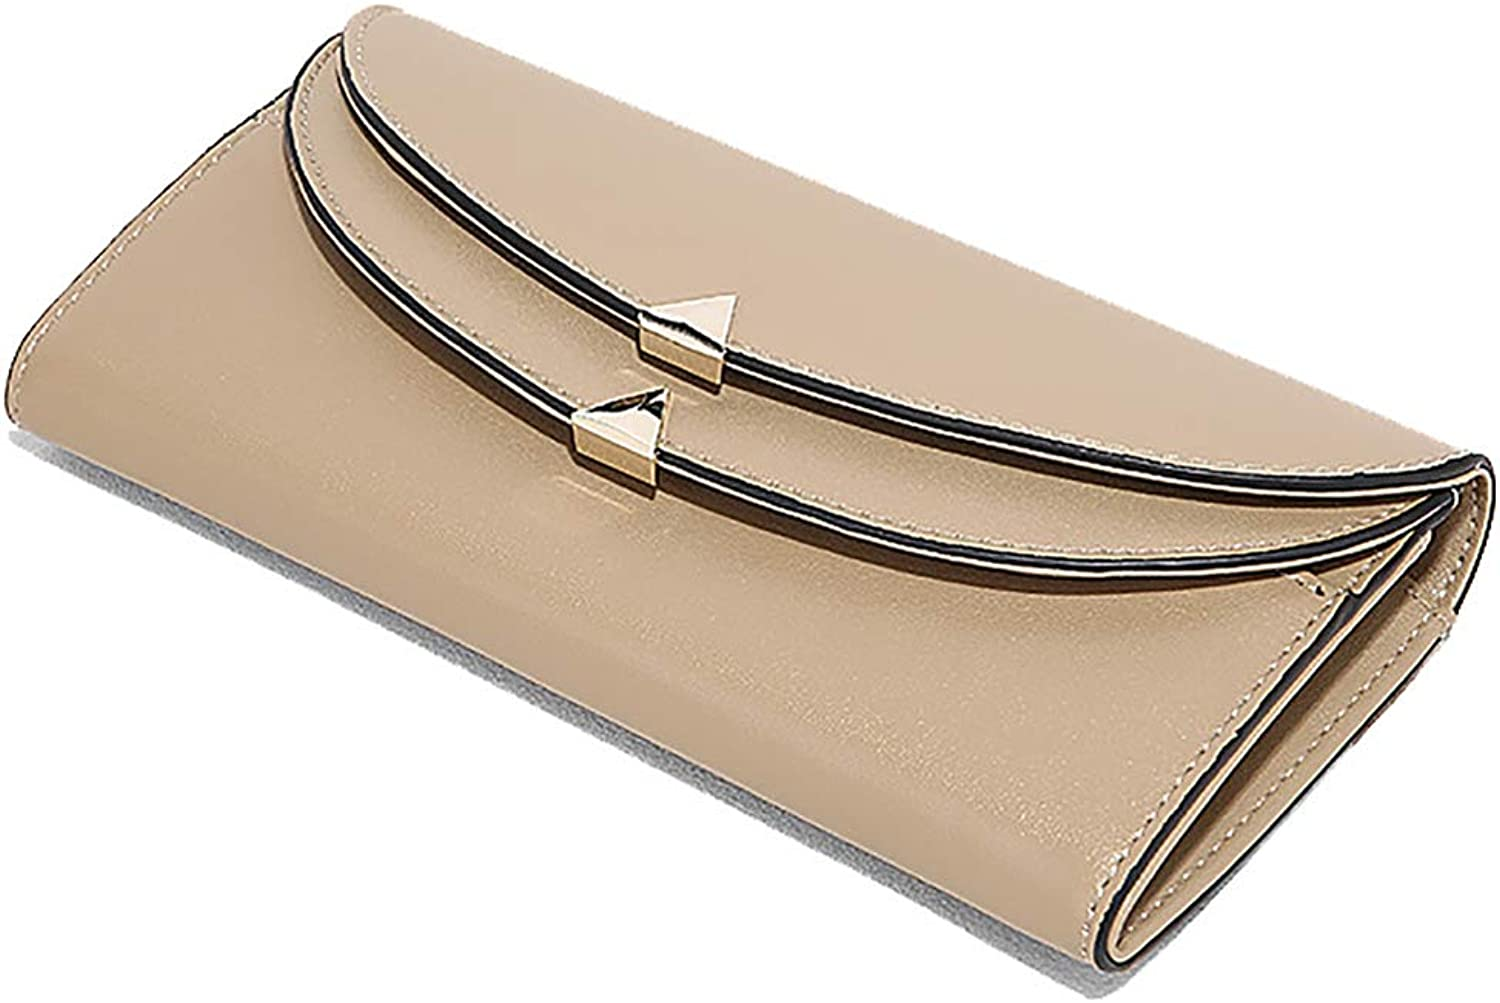 Wallet Female New Fashion Long Leather Clutch Bag Wallet (color   Light Brown, Size   14  9  3cm)